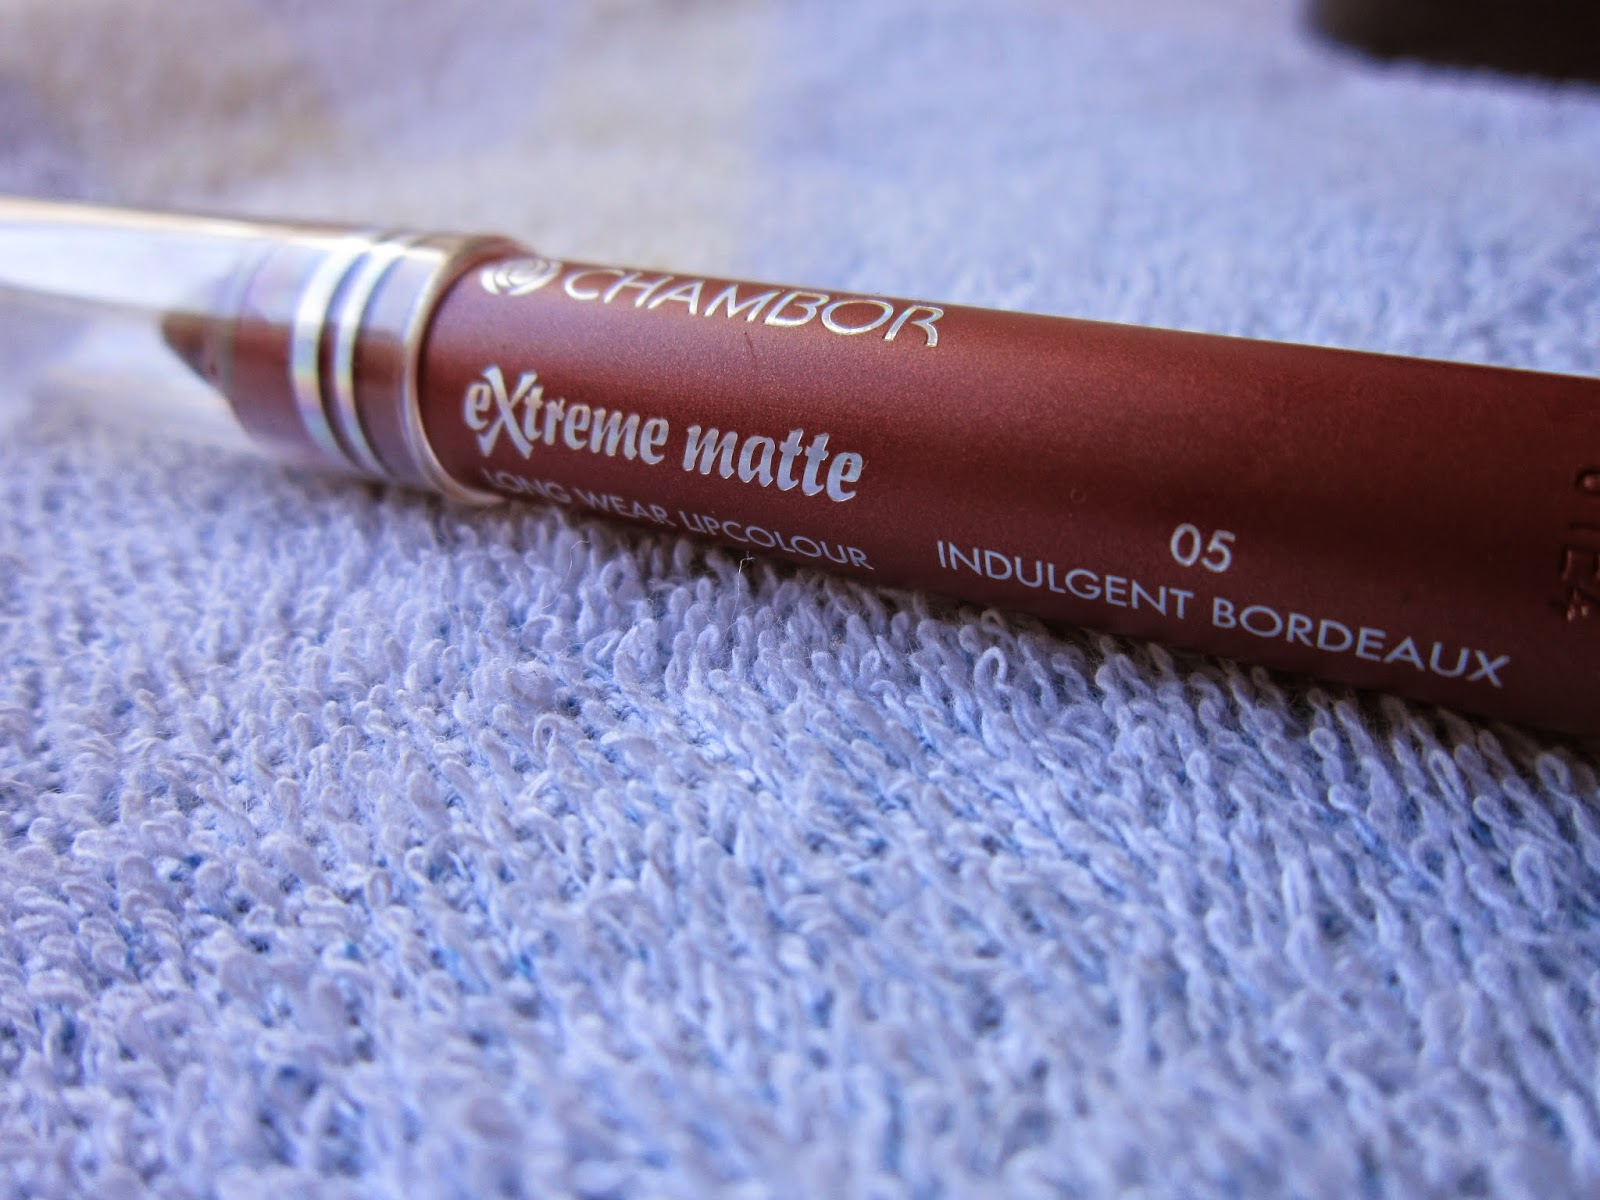 Chambor Extreme Matte Lip Colour - Indulgent Bordeaux